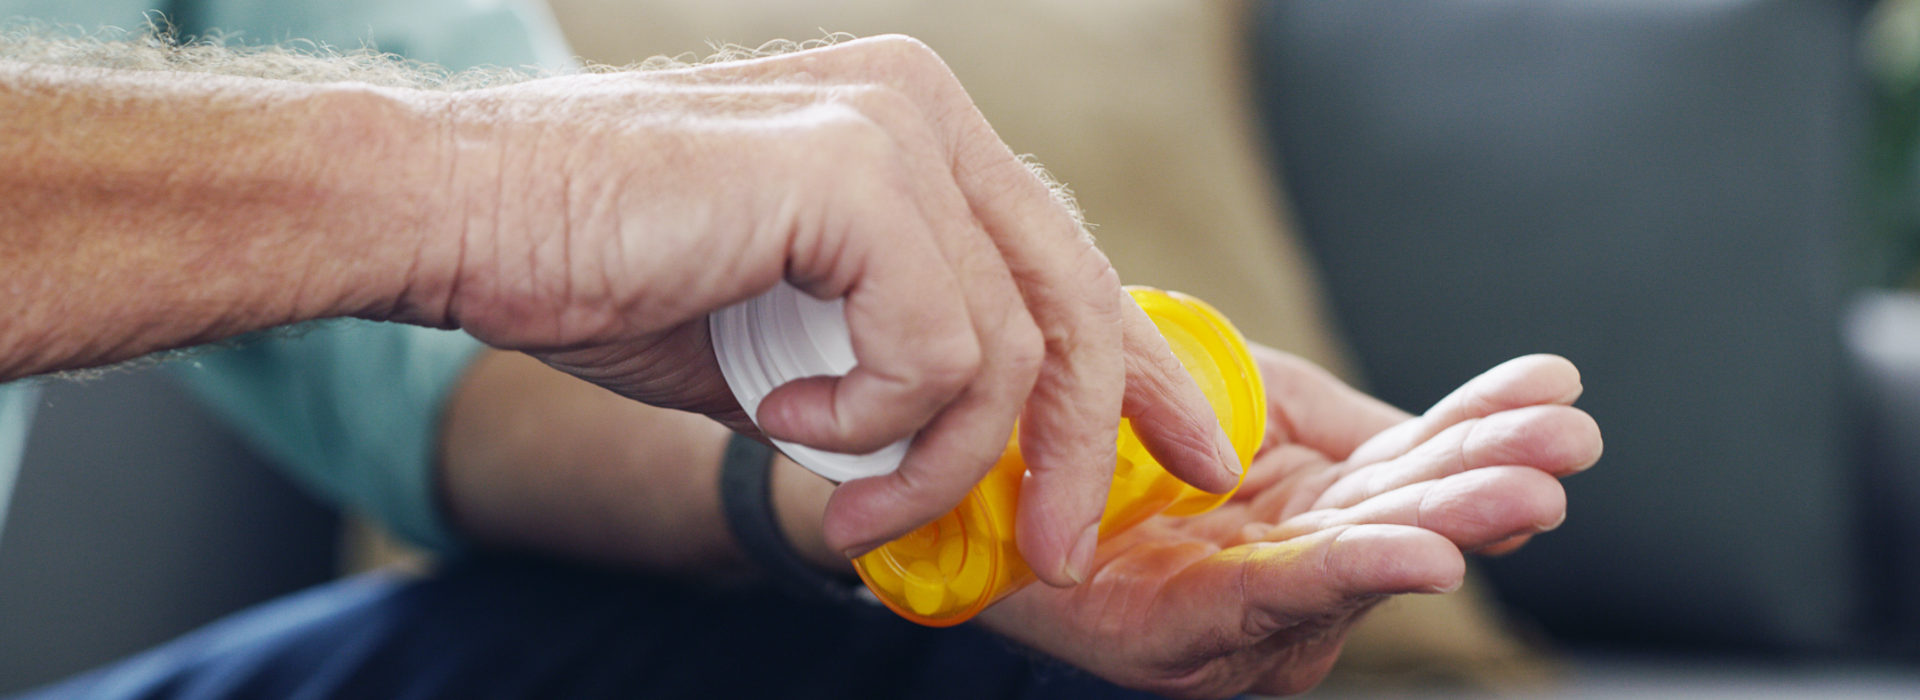 Man holds hand out while pouring medication from prescription bottle.